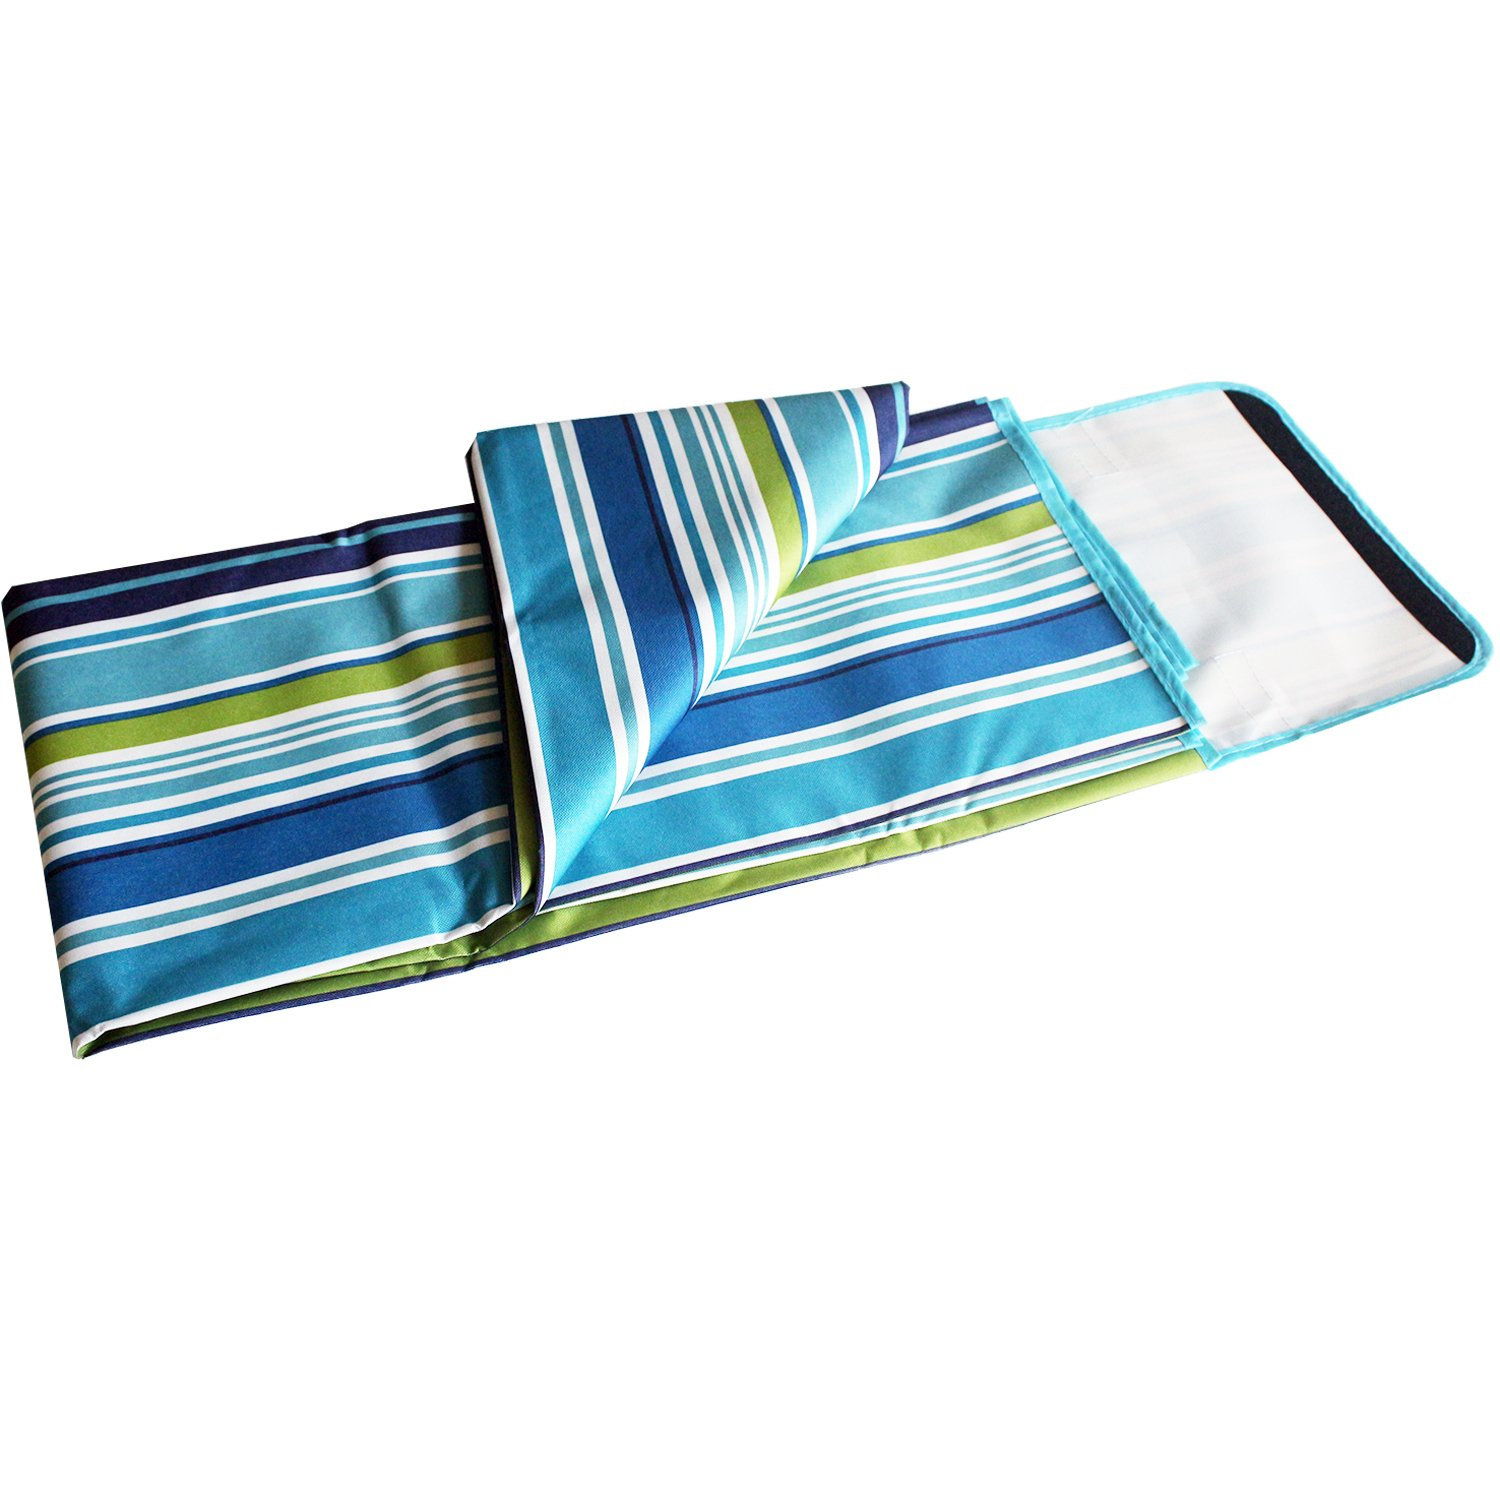 Picnic Mat by MagicDesign 70x62 Extra Large Foldable and Waterproof Camping Family Blanket with Tote for Outdoor Beach Hiking Grass Travel,Stripe and Mildew Resistant